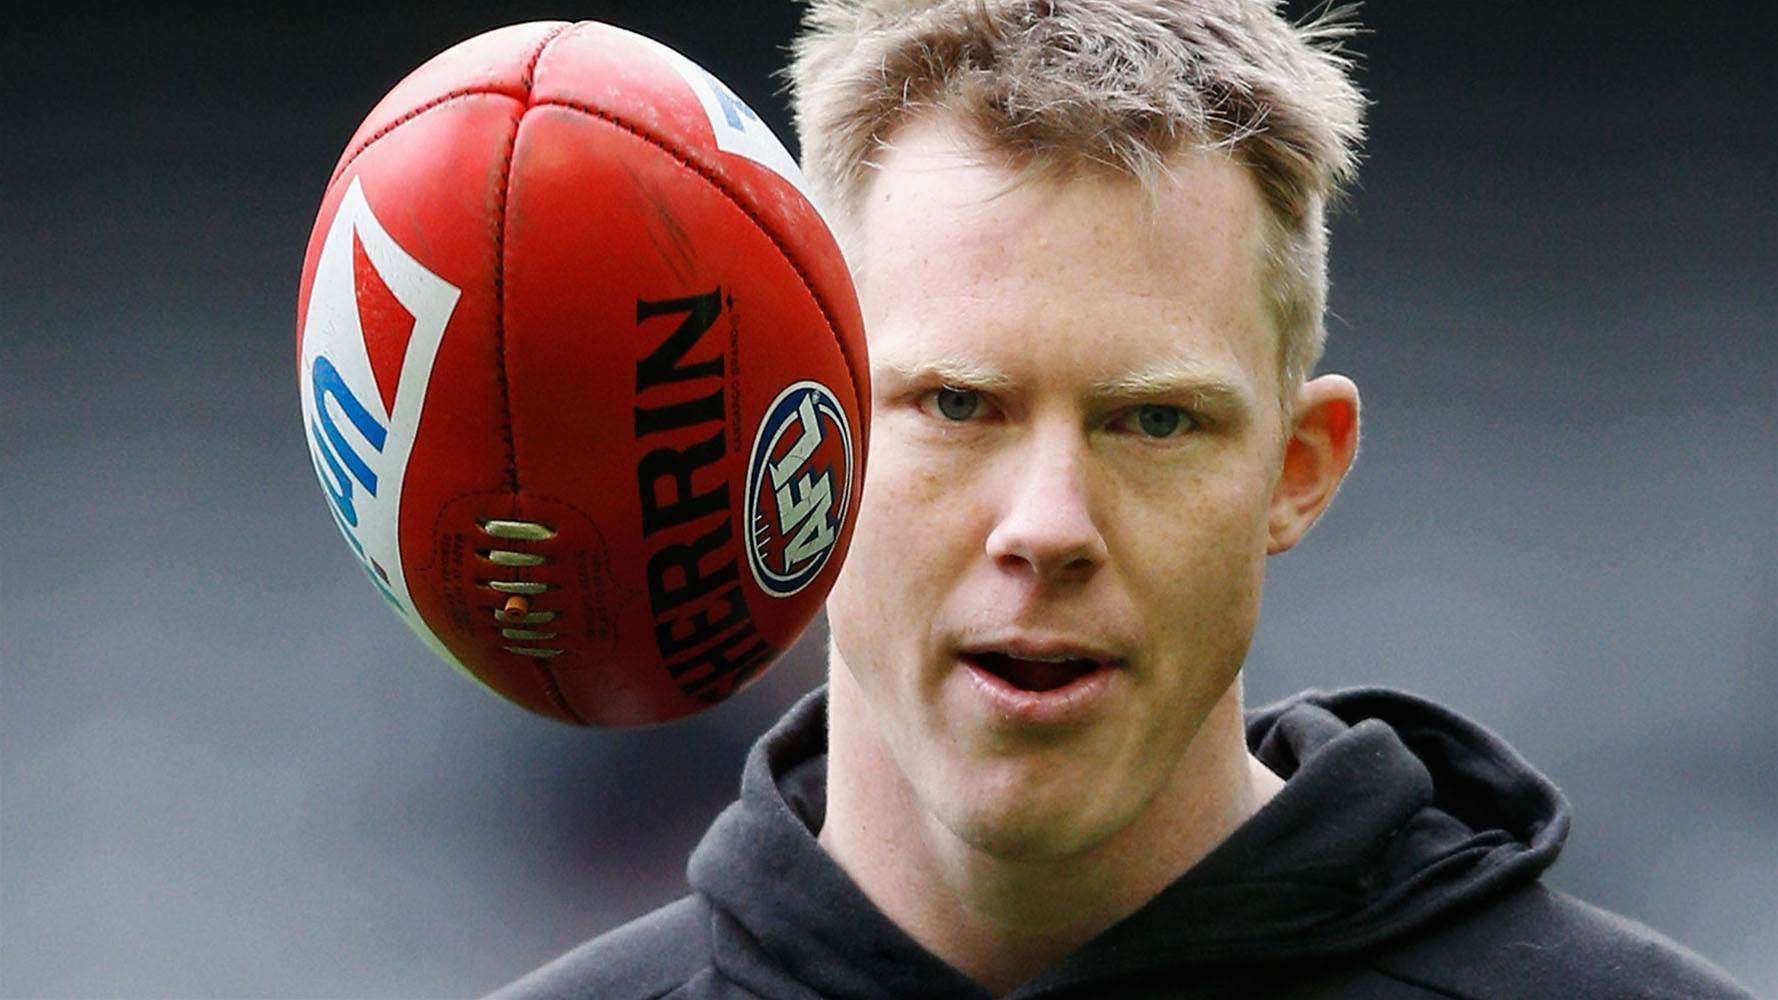 'Desperate' Riewoldt knocked back by two doctors